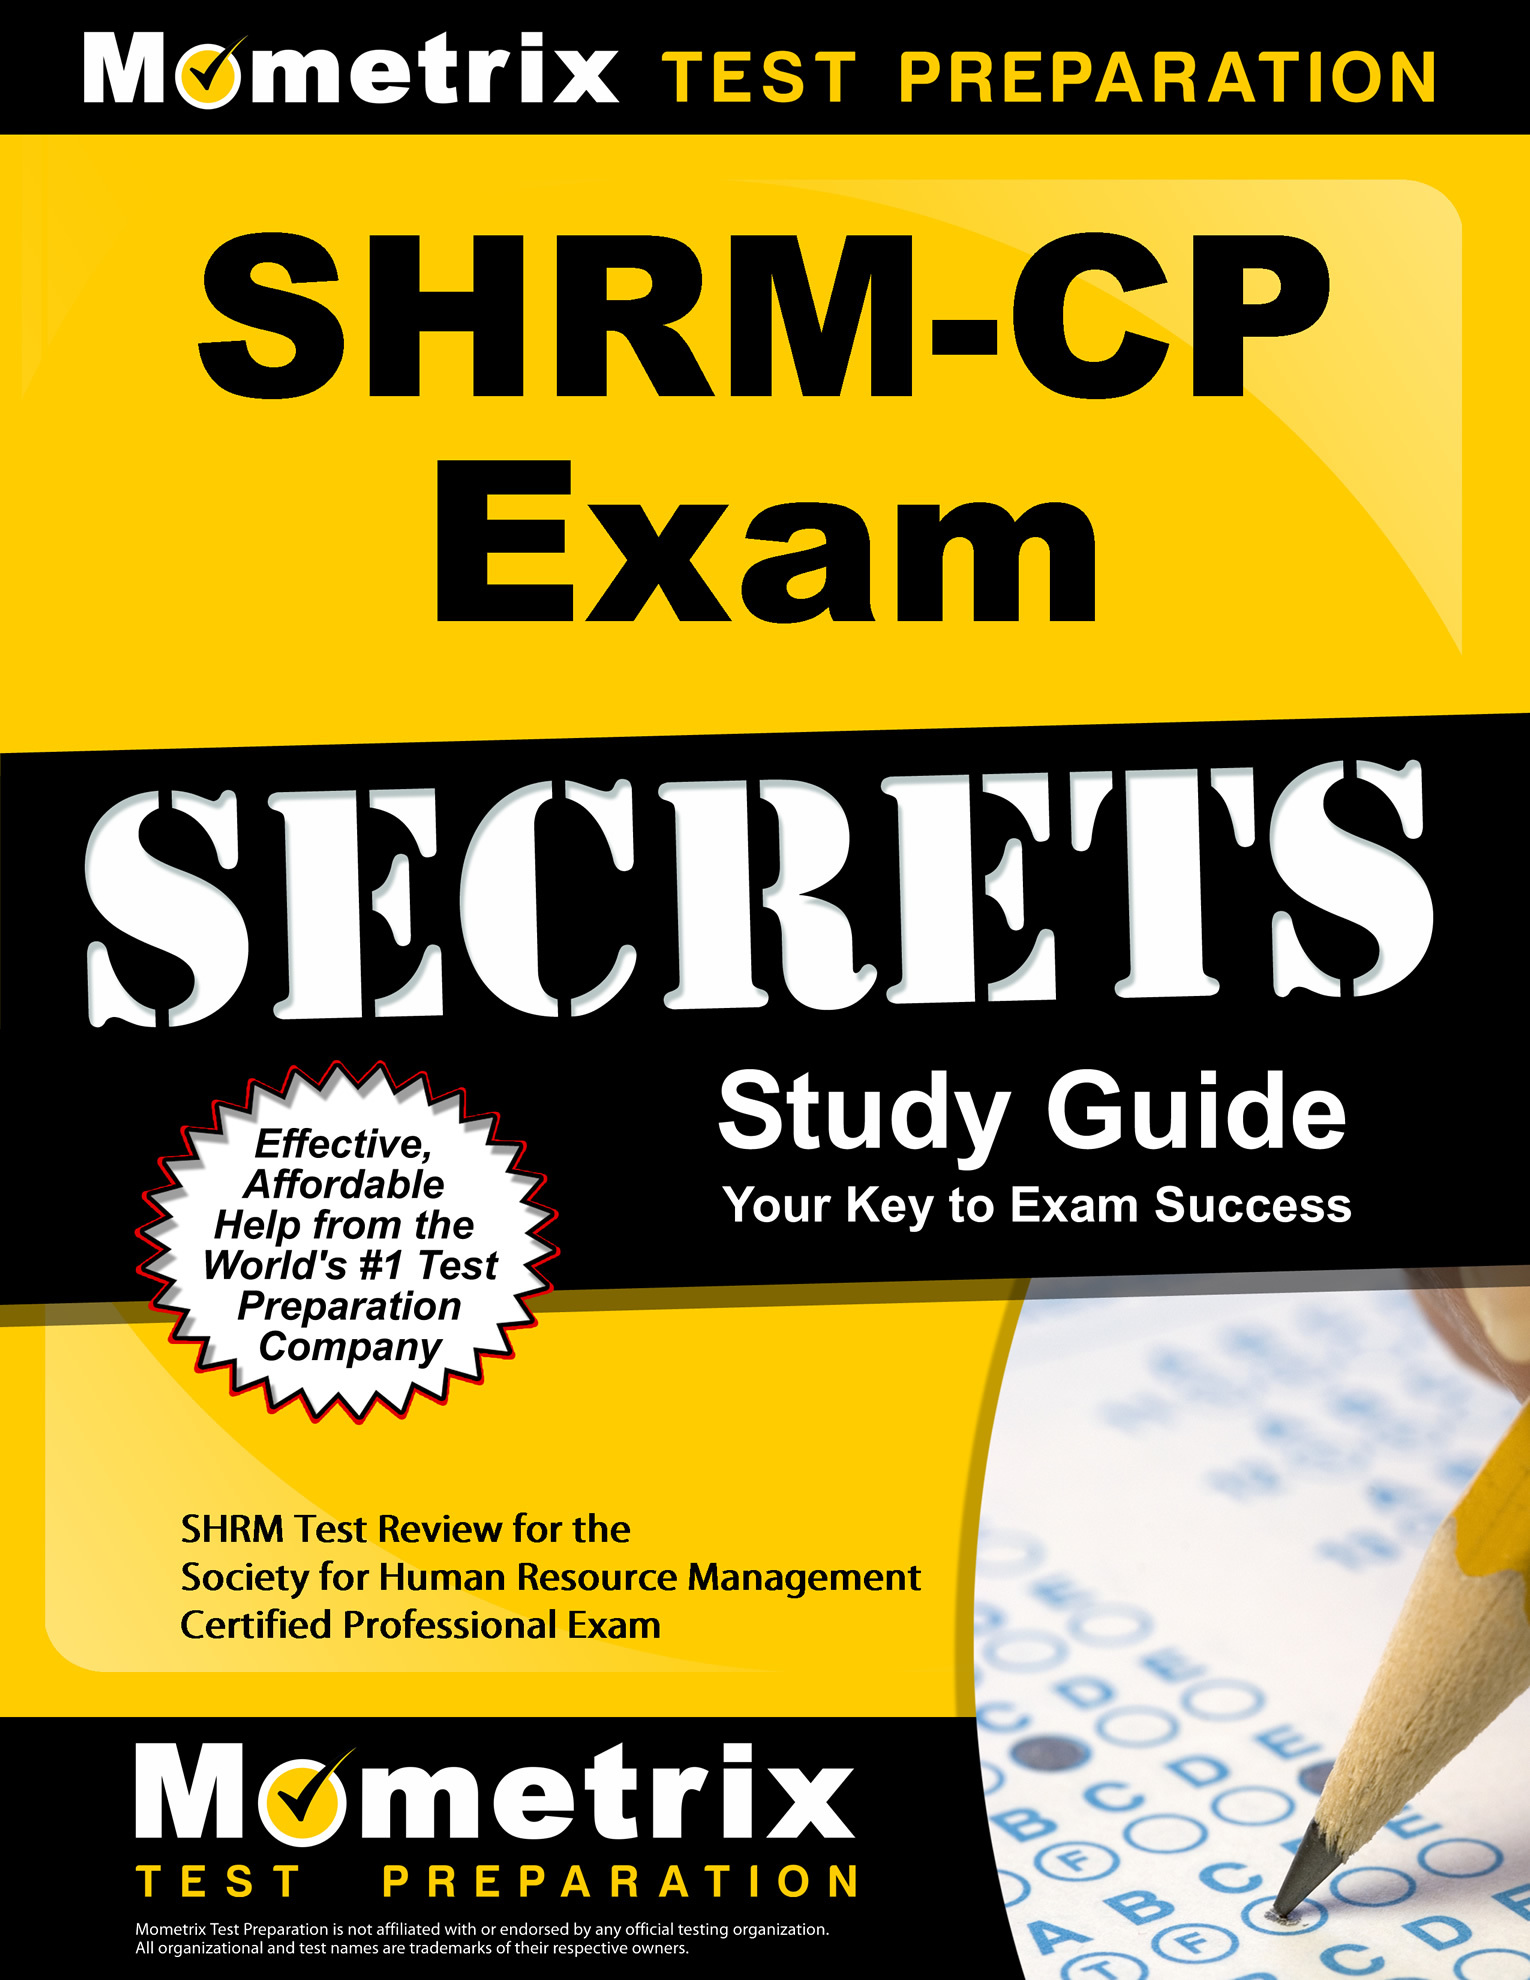 Fresh pics of shrm certification exam business cards and resume best free shrm certification study guide xflitez Gallery